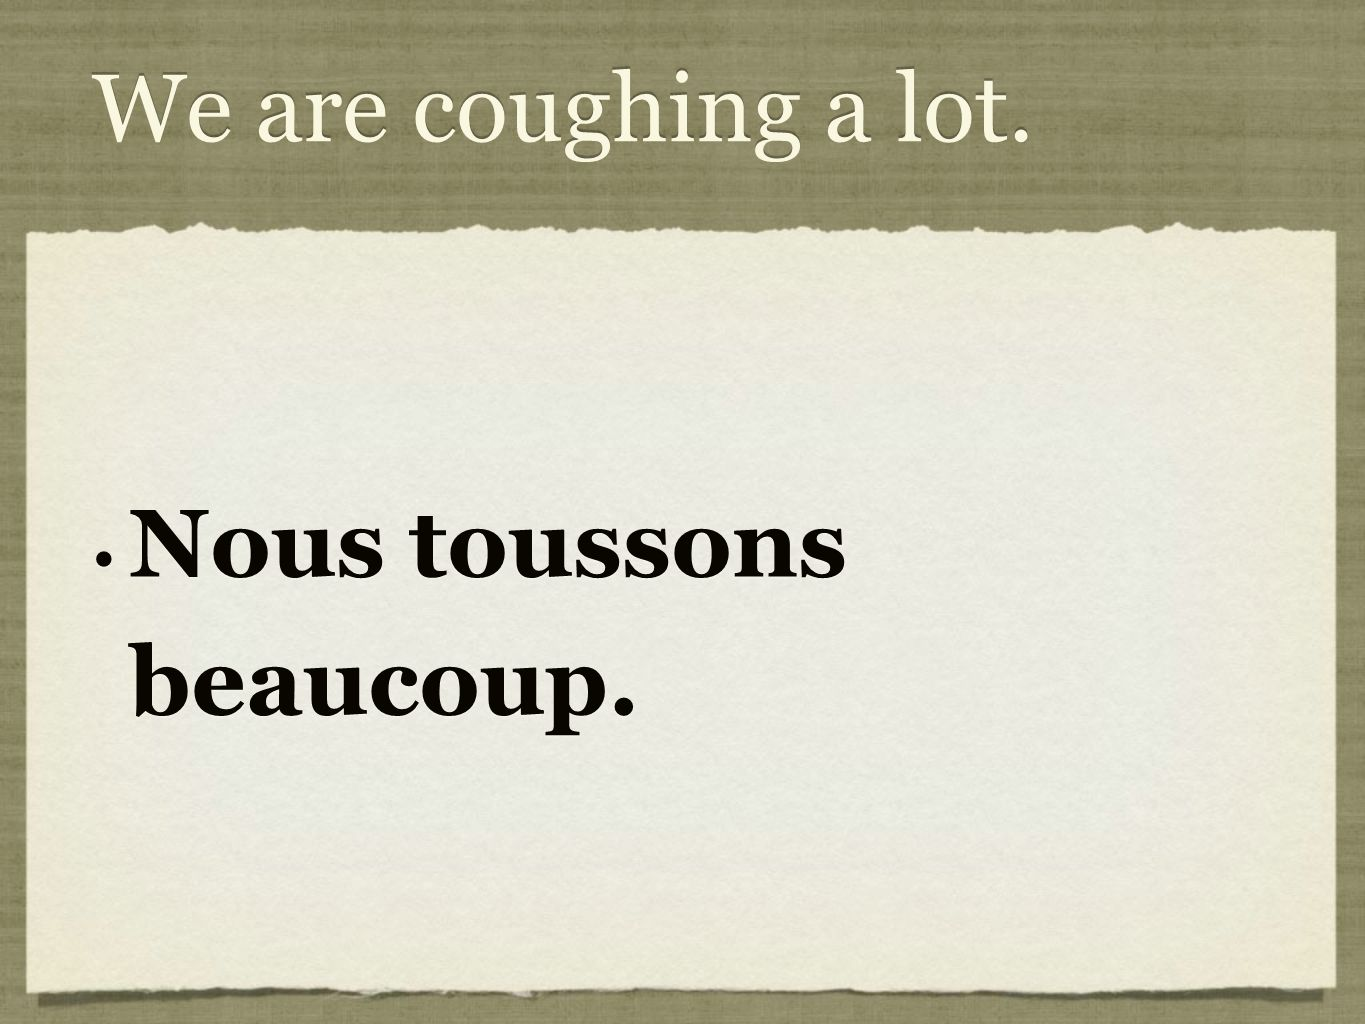 We are coughing a lot. Nous toussons beaucoup.